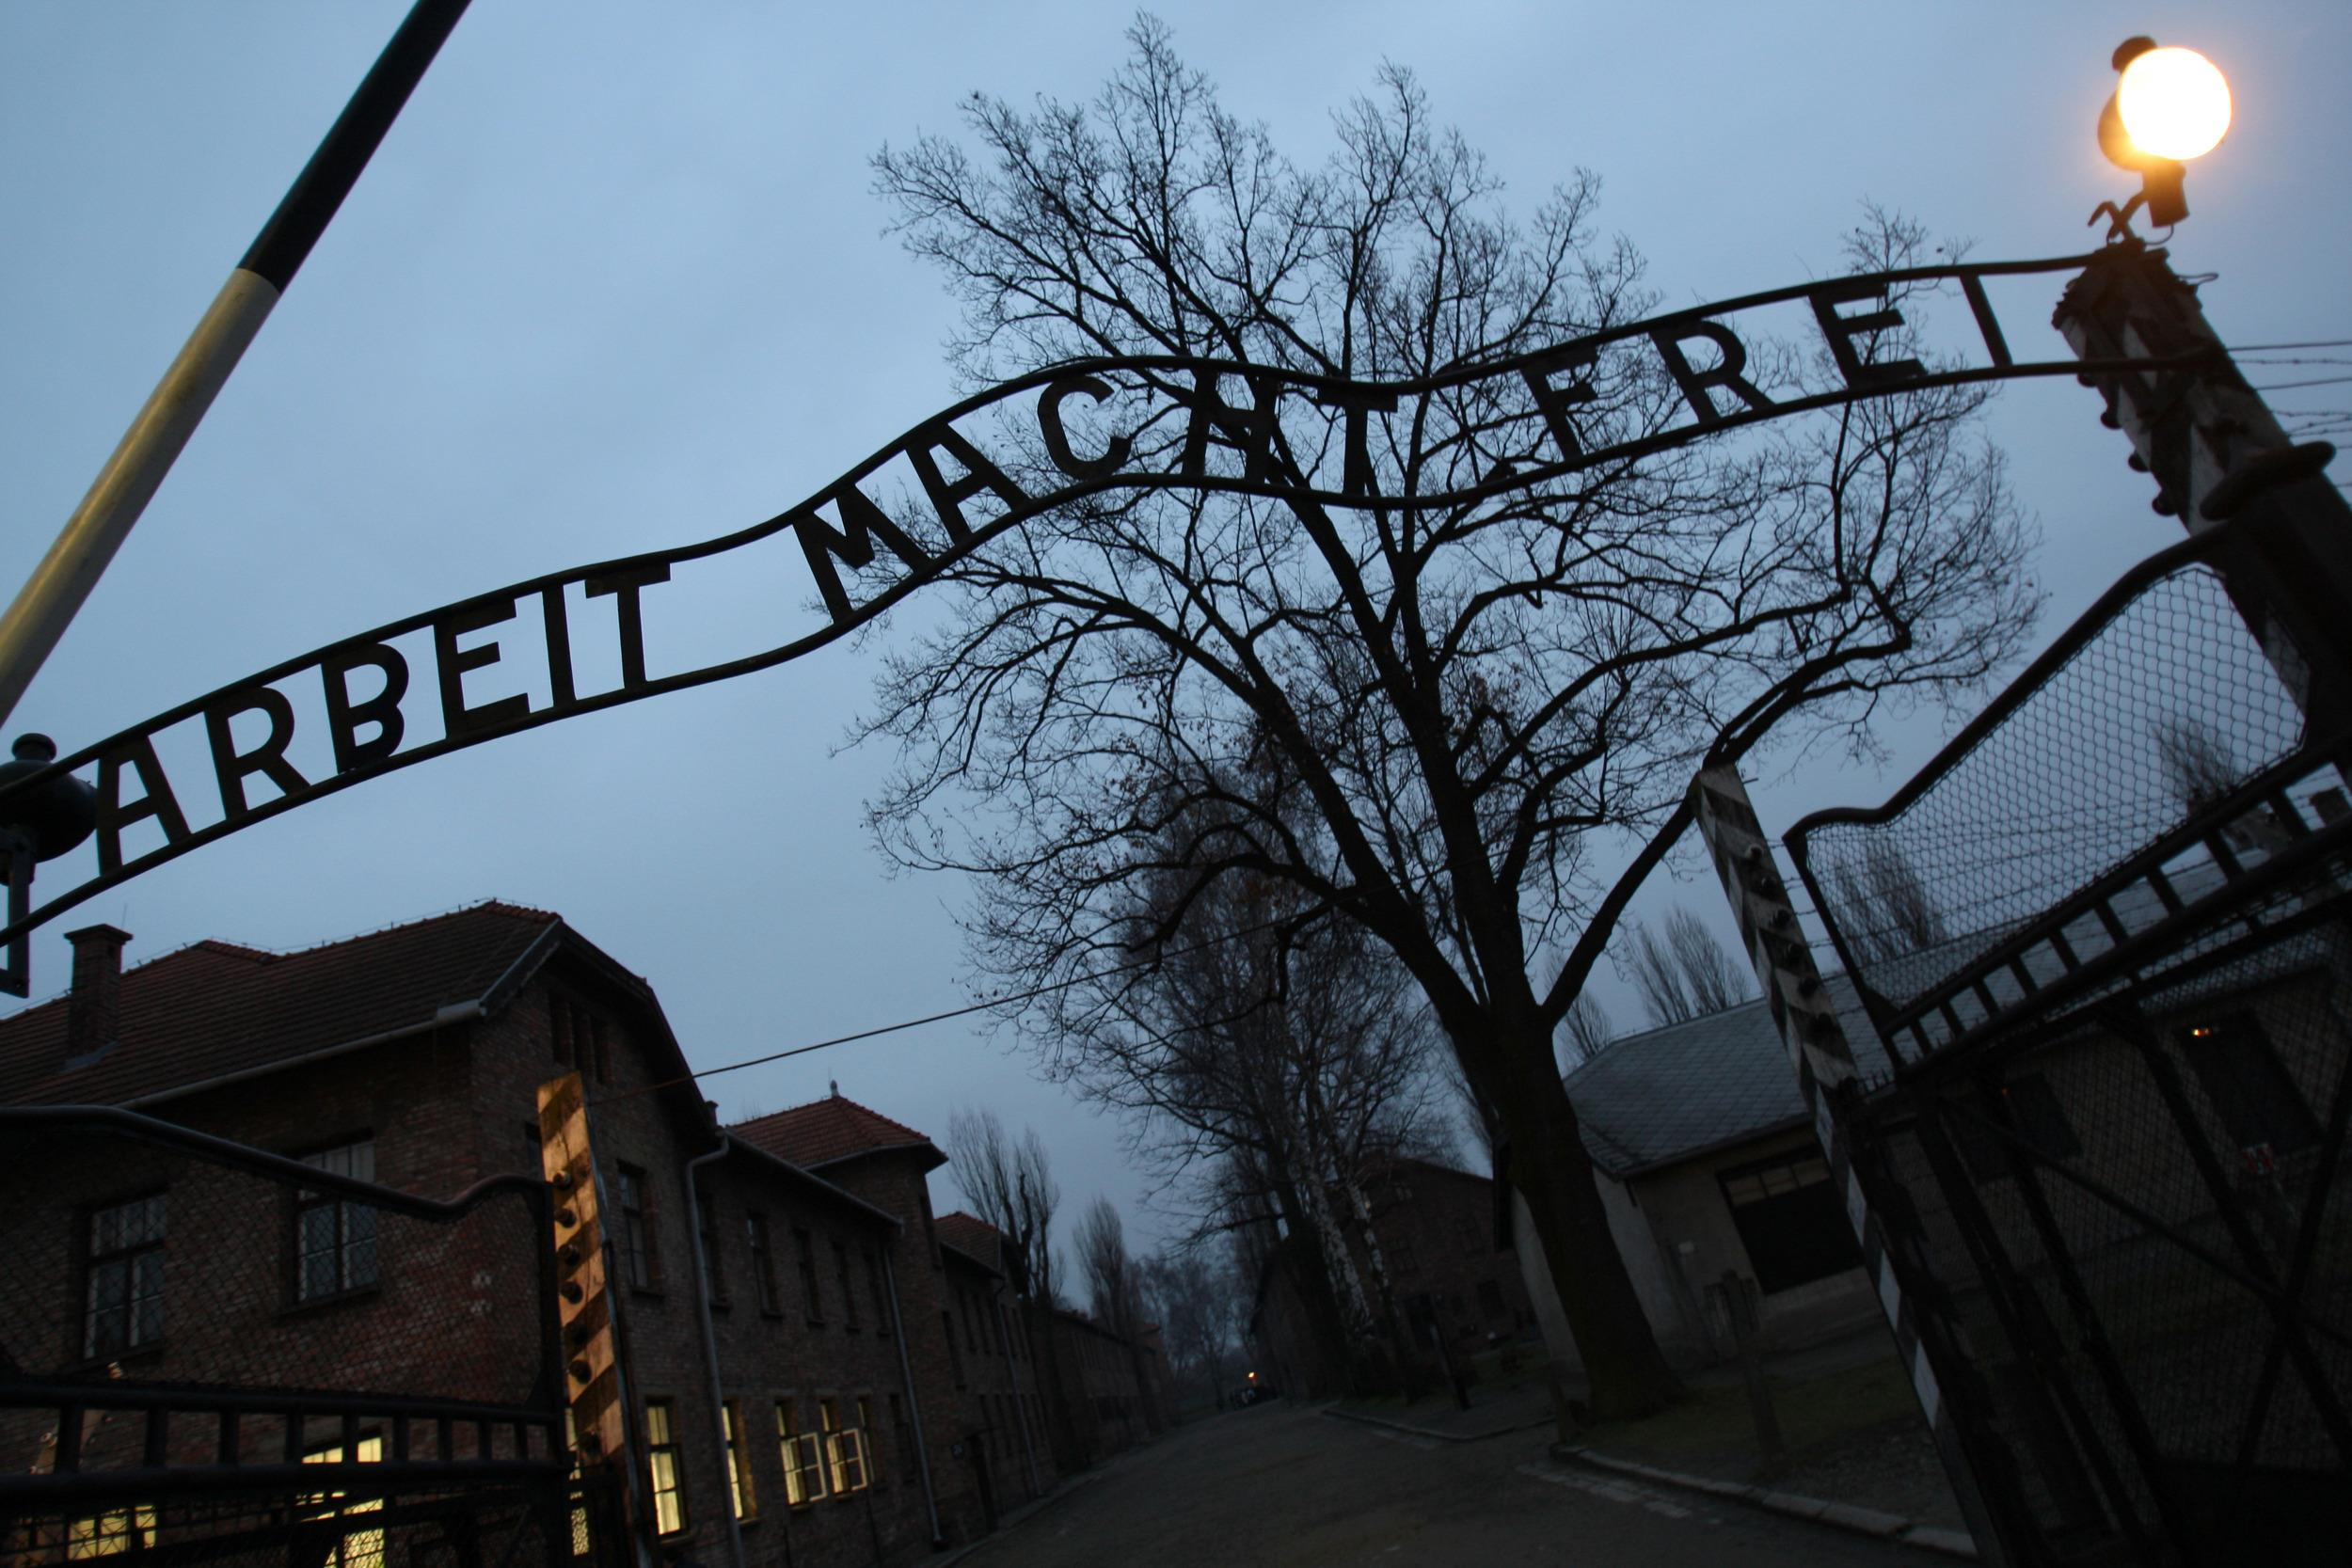 Image: Entrance to Auschwitz